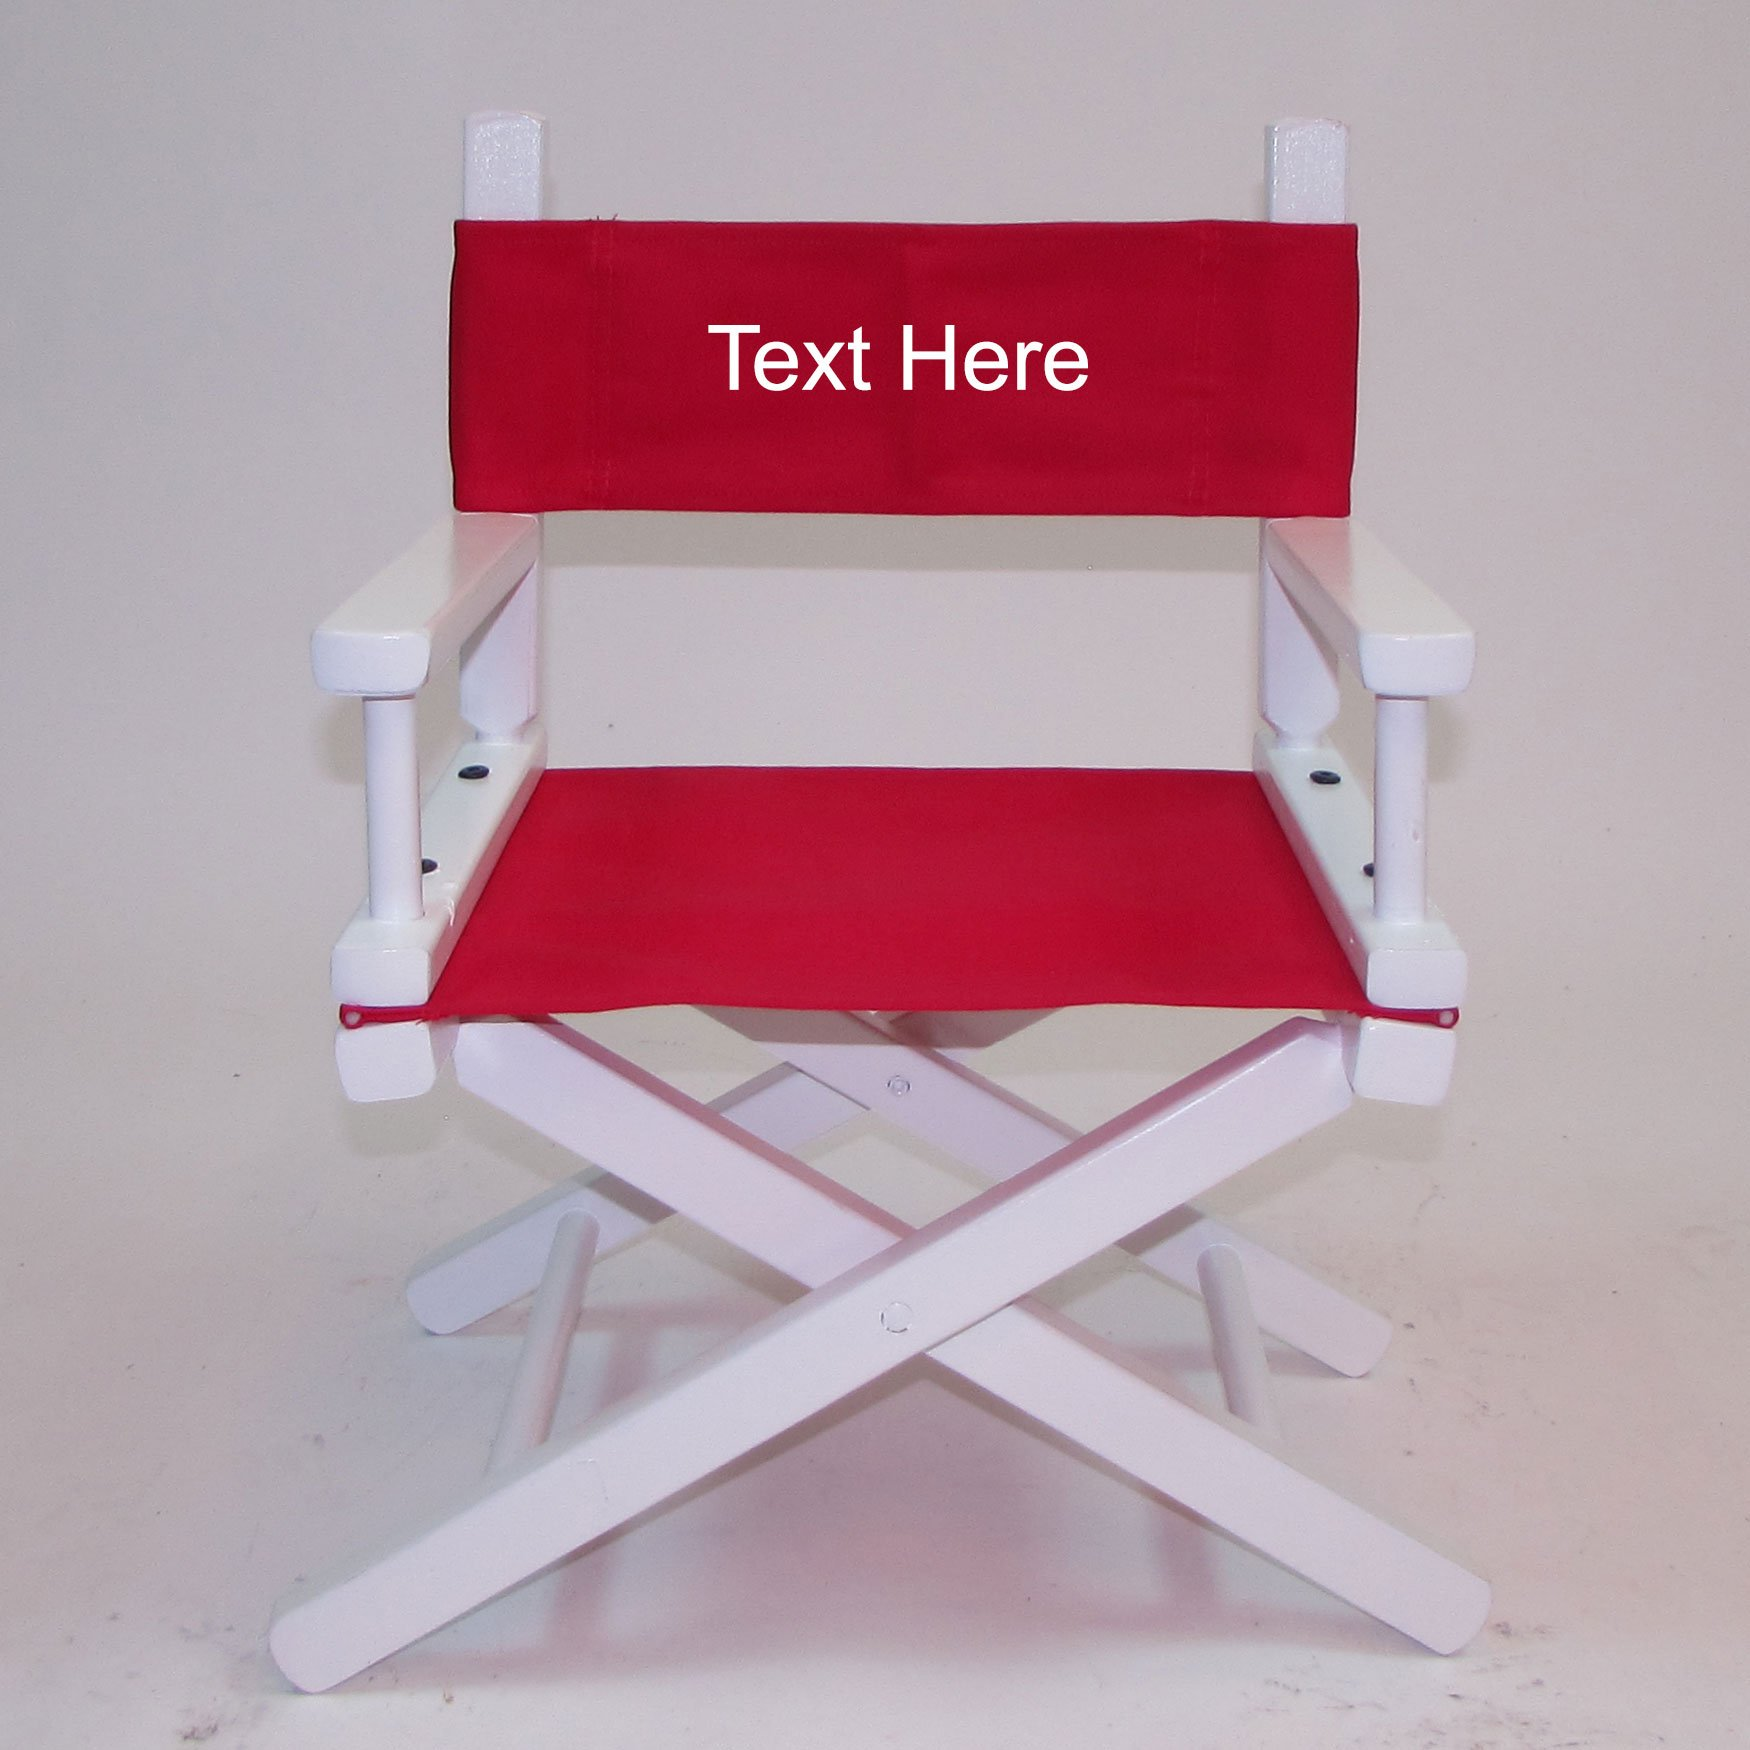 PERSONALIZED IMPRINTED White Frame Toddler's Directors Chair by Gold Medal - Red Canvas by TLT